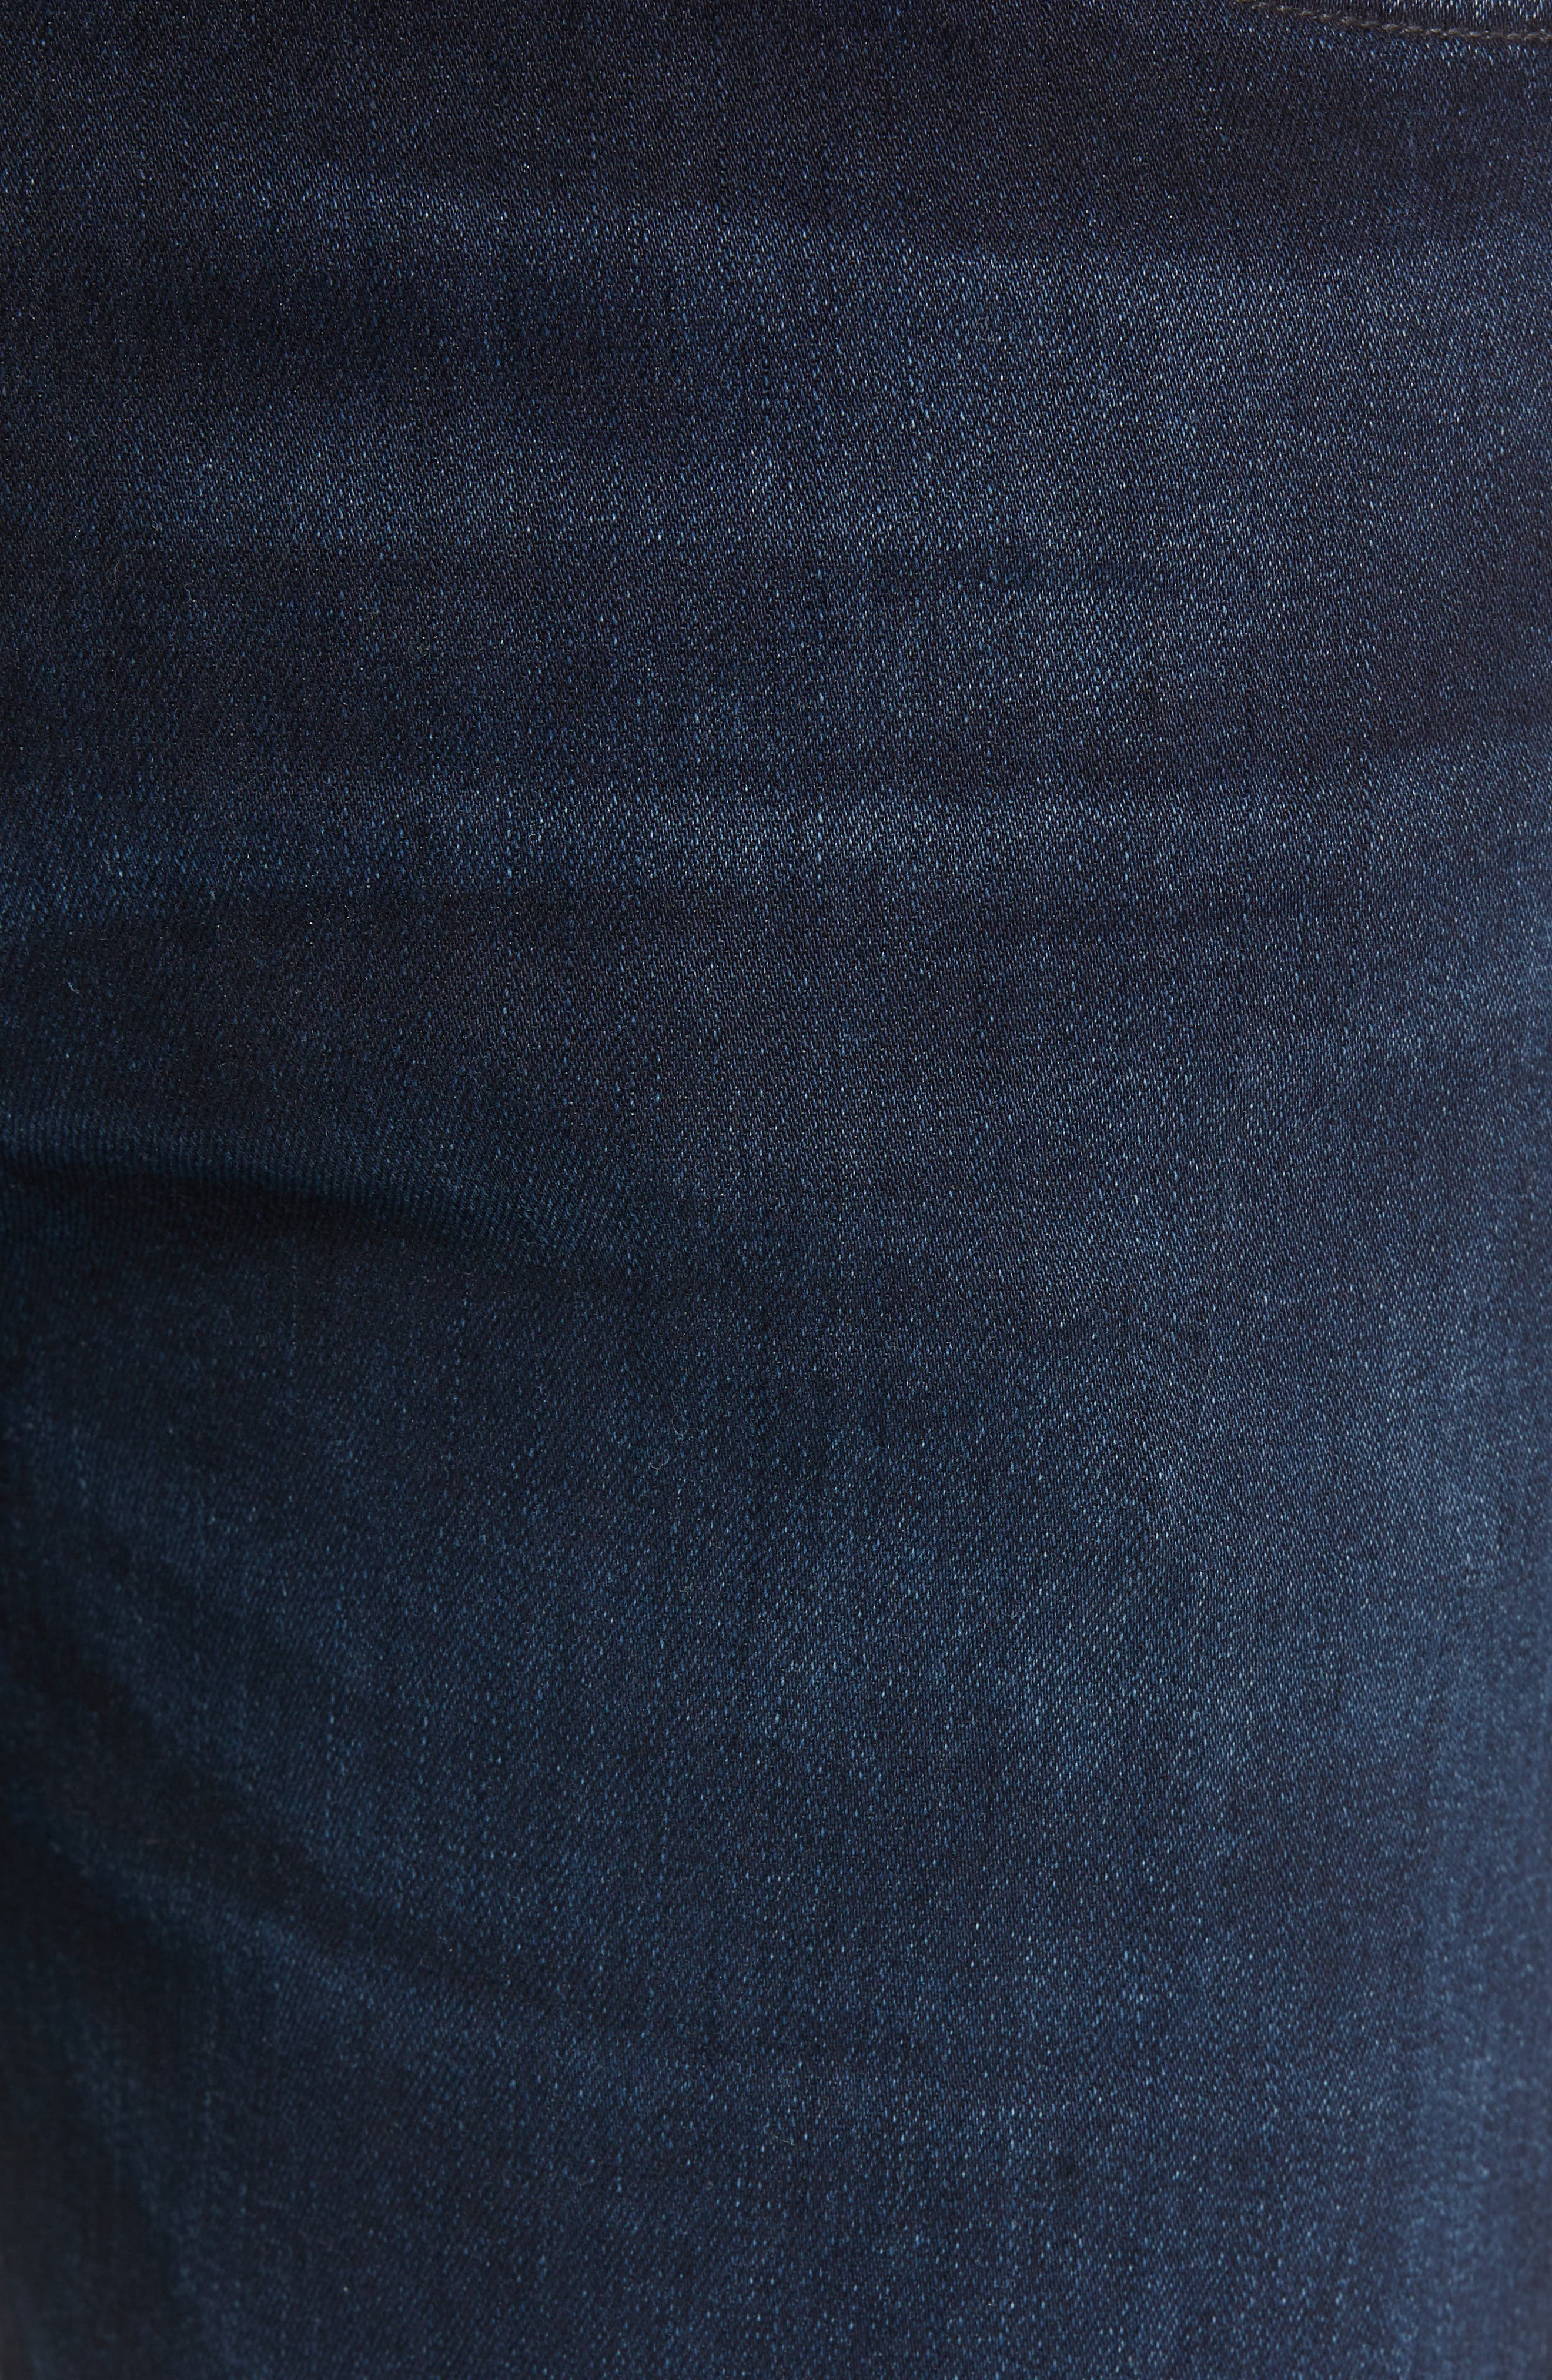 Bowery Slim Fit Jeans,                             Alternate thumbnail 5, color,                             407